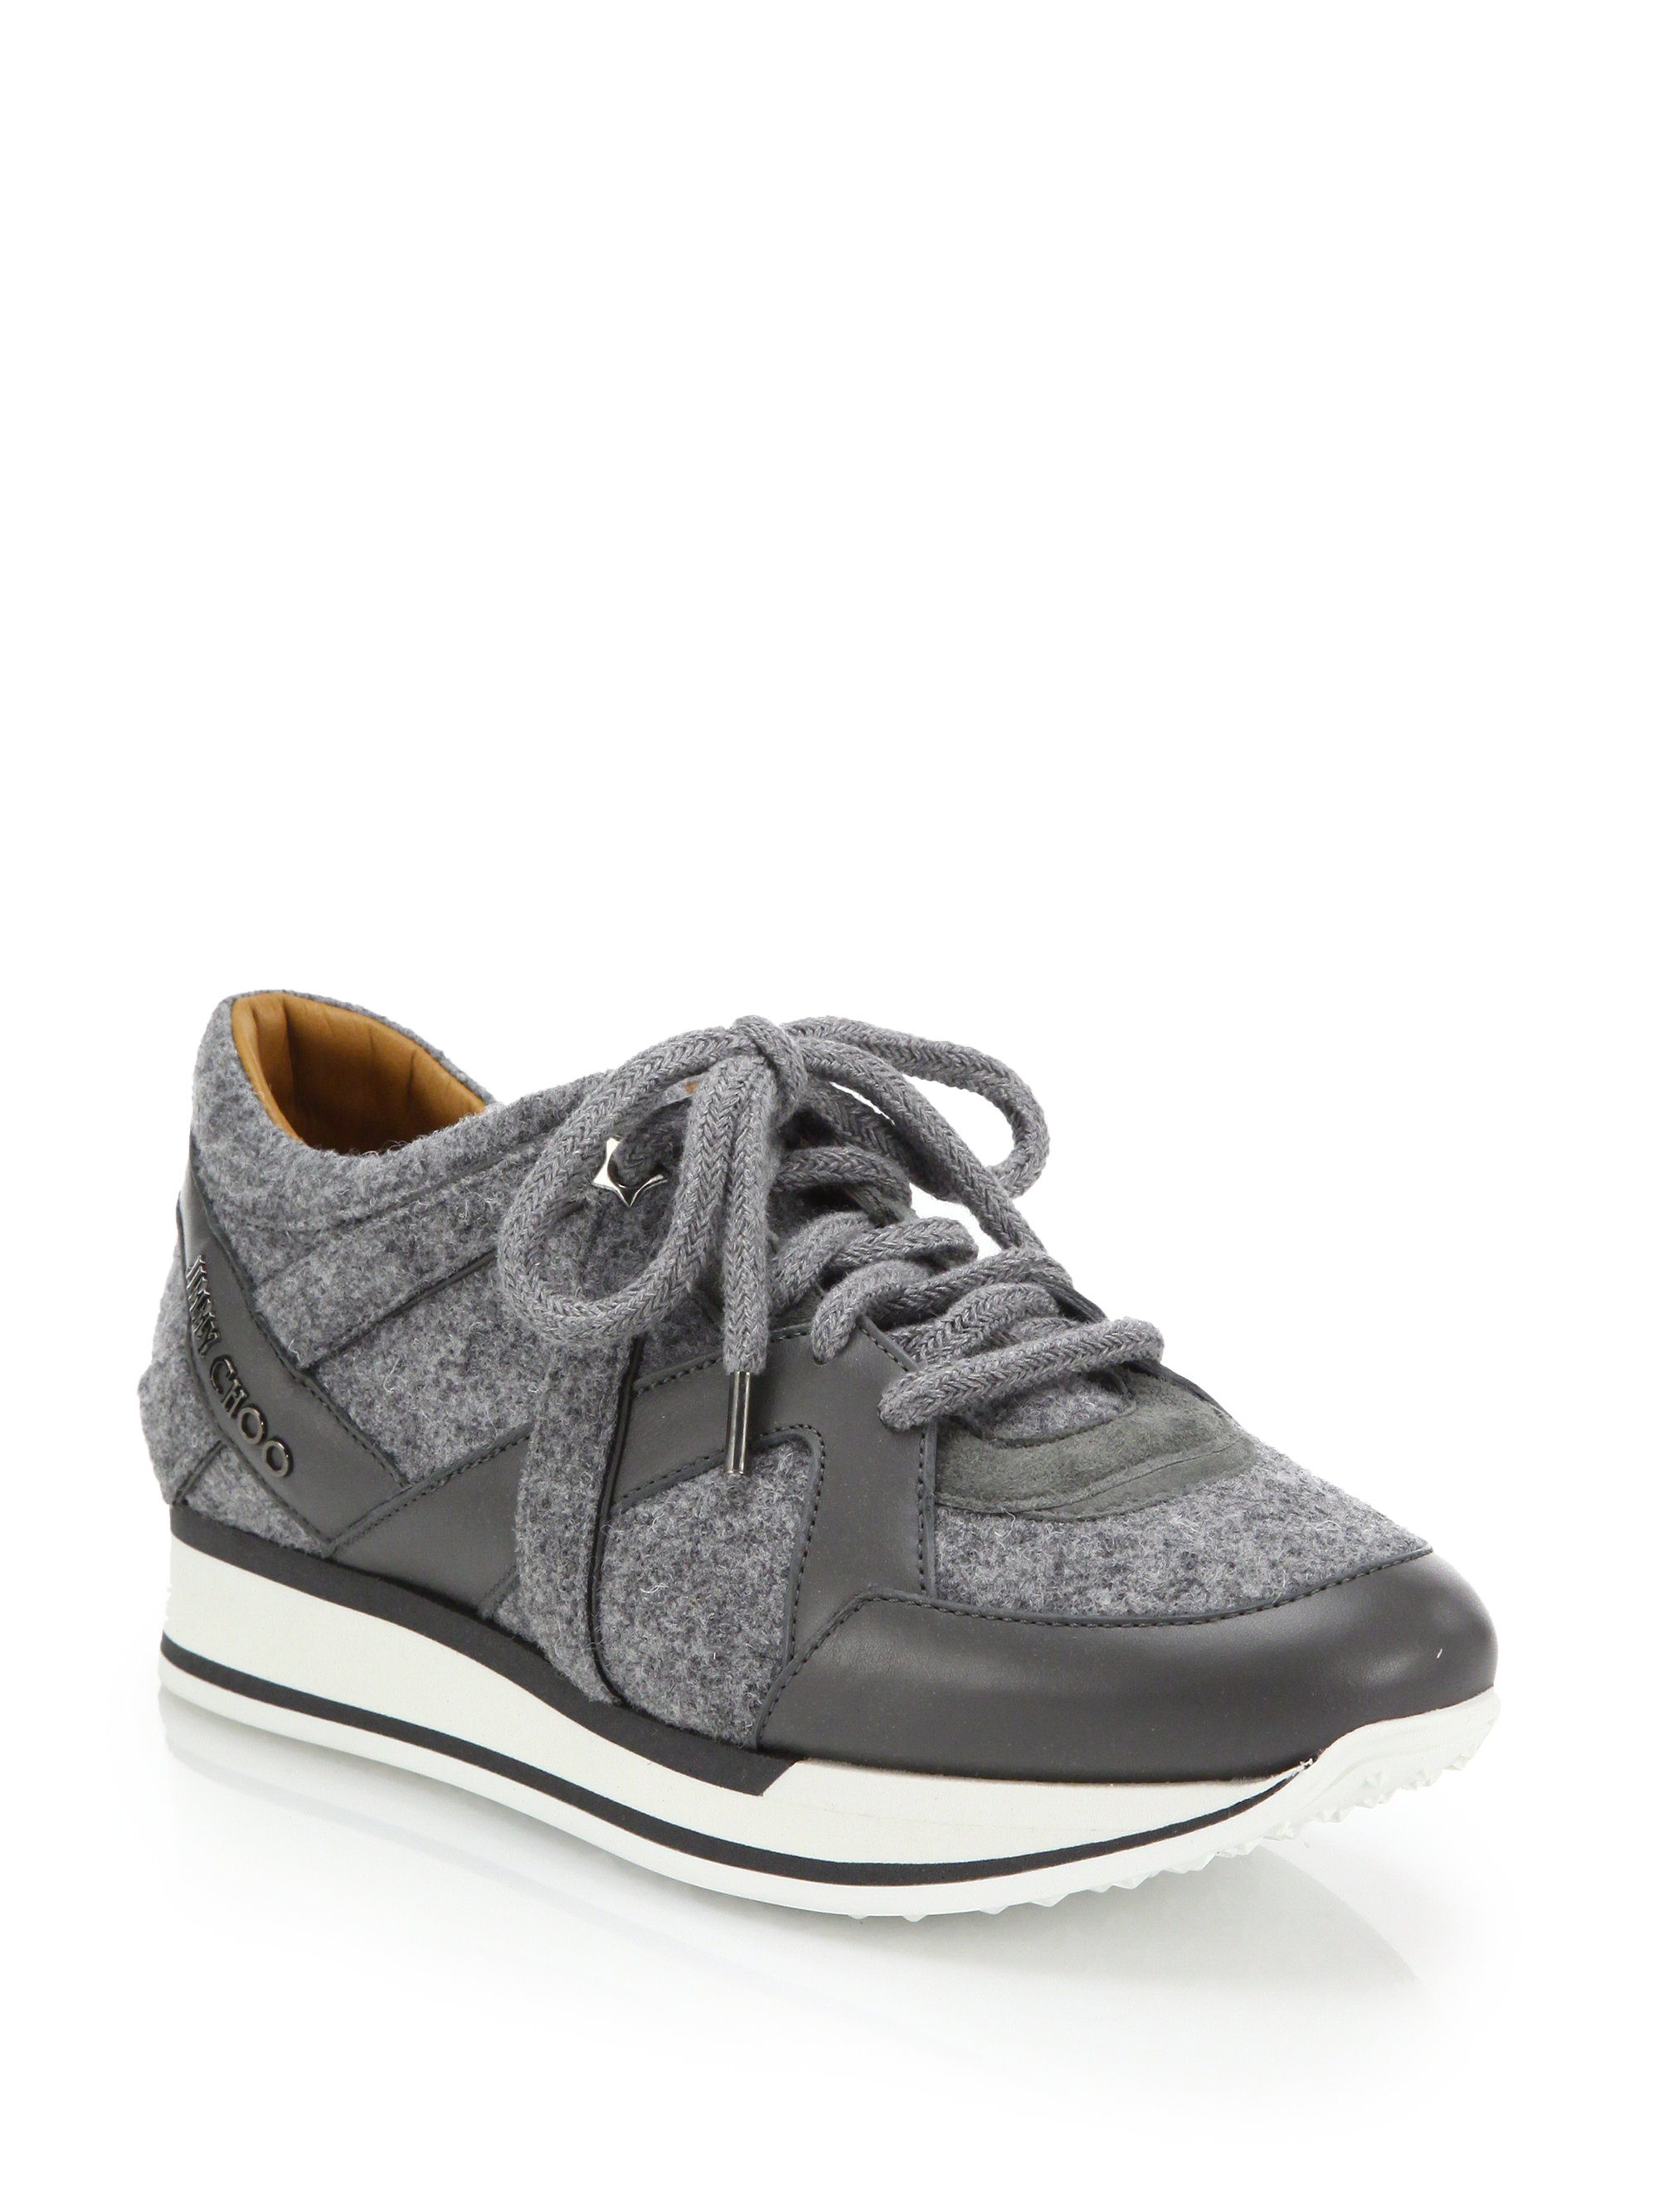 jimmy choo london felt leather suede sneakers in gray lyst. Black Bedroom Furniture Sets. Home Design Ideas